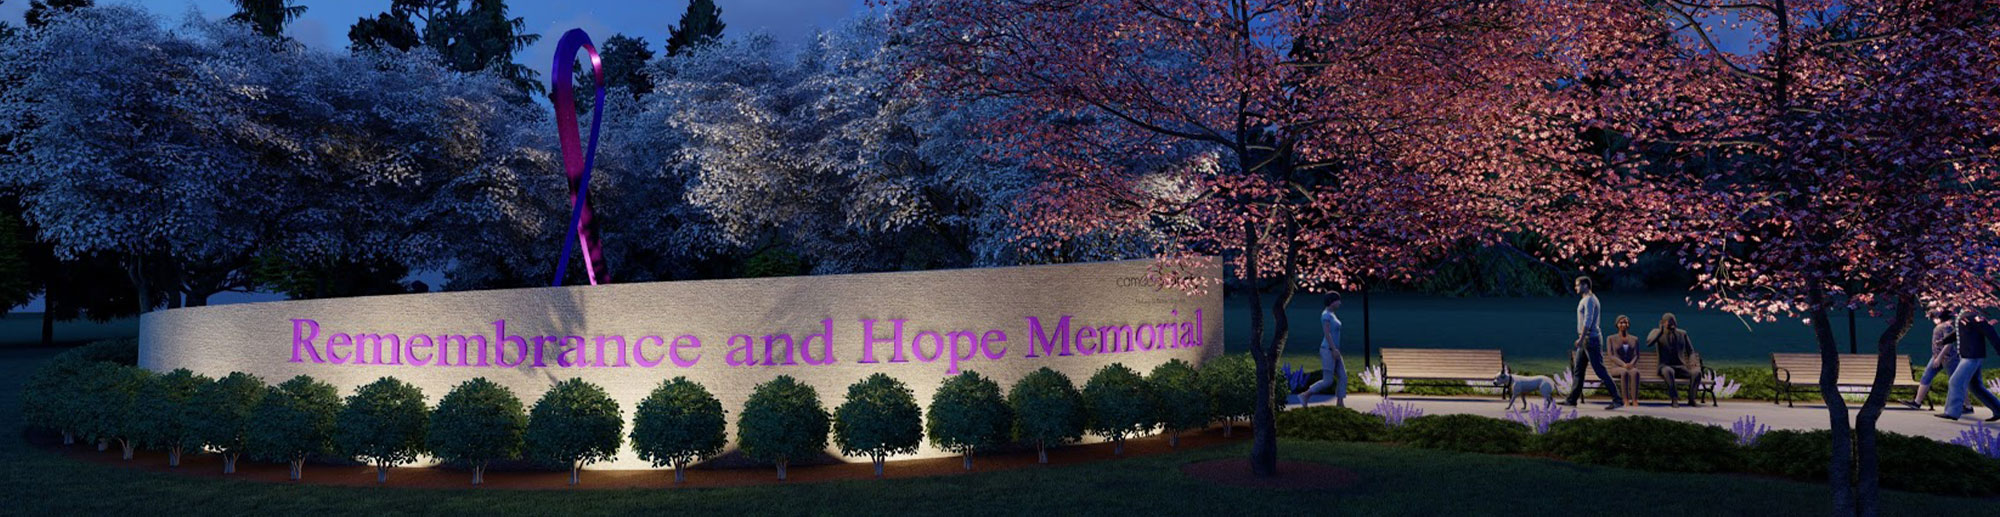 Remembrance and Hope Memorial